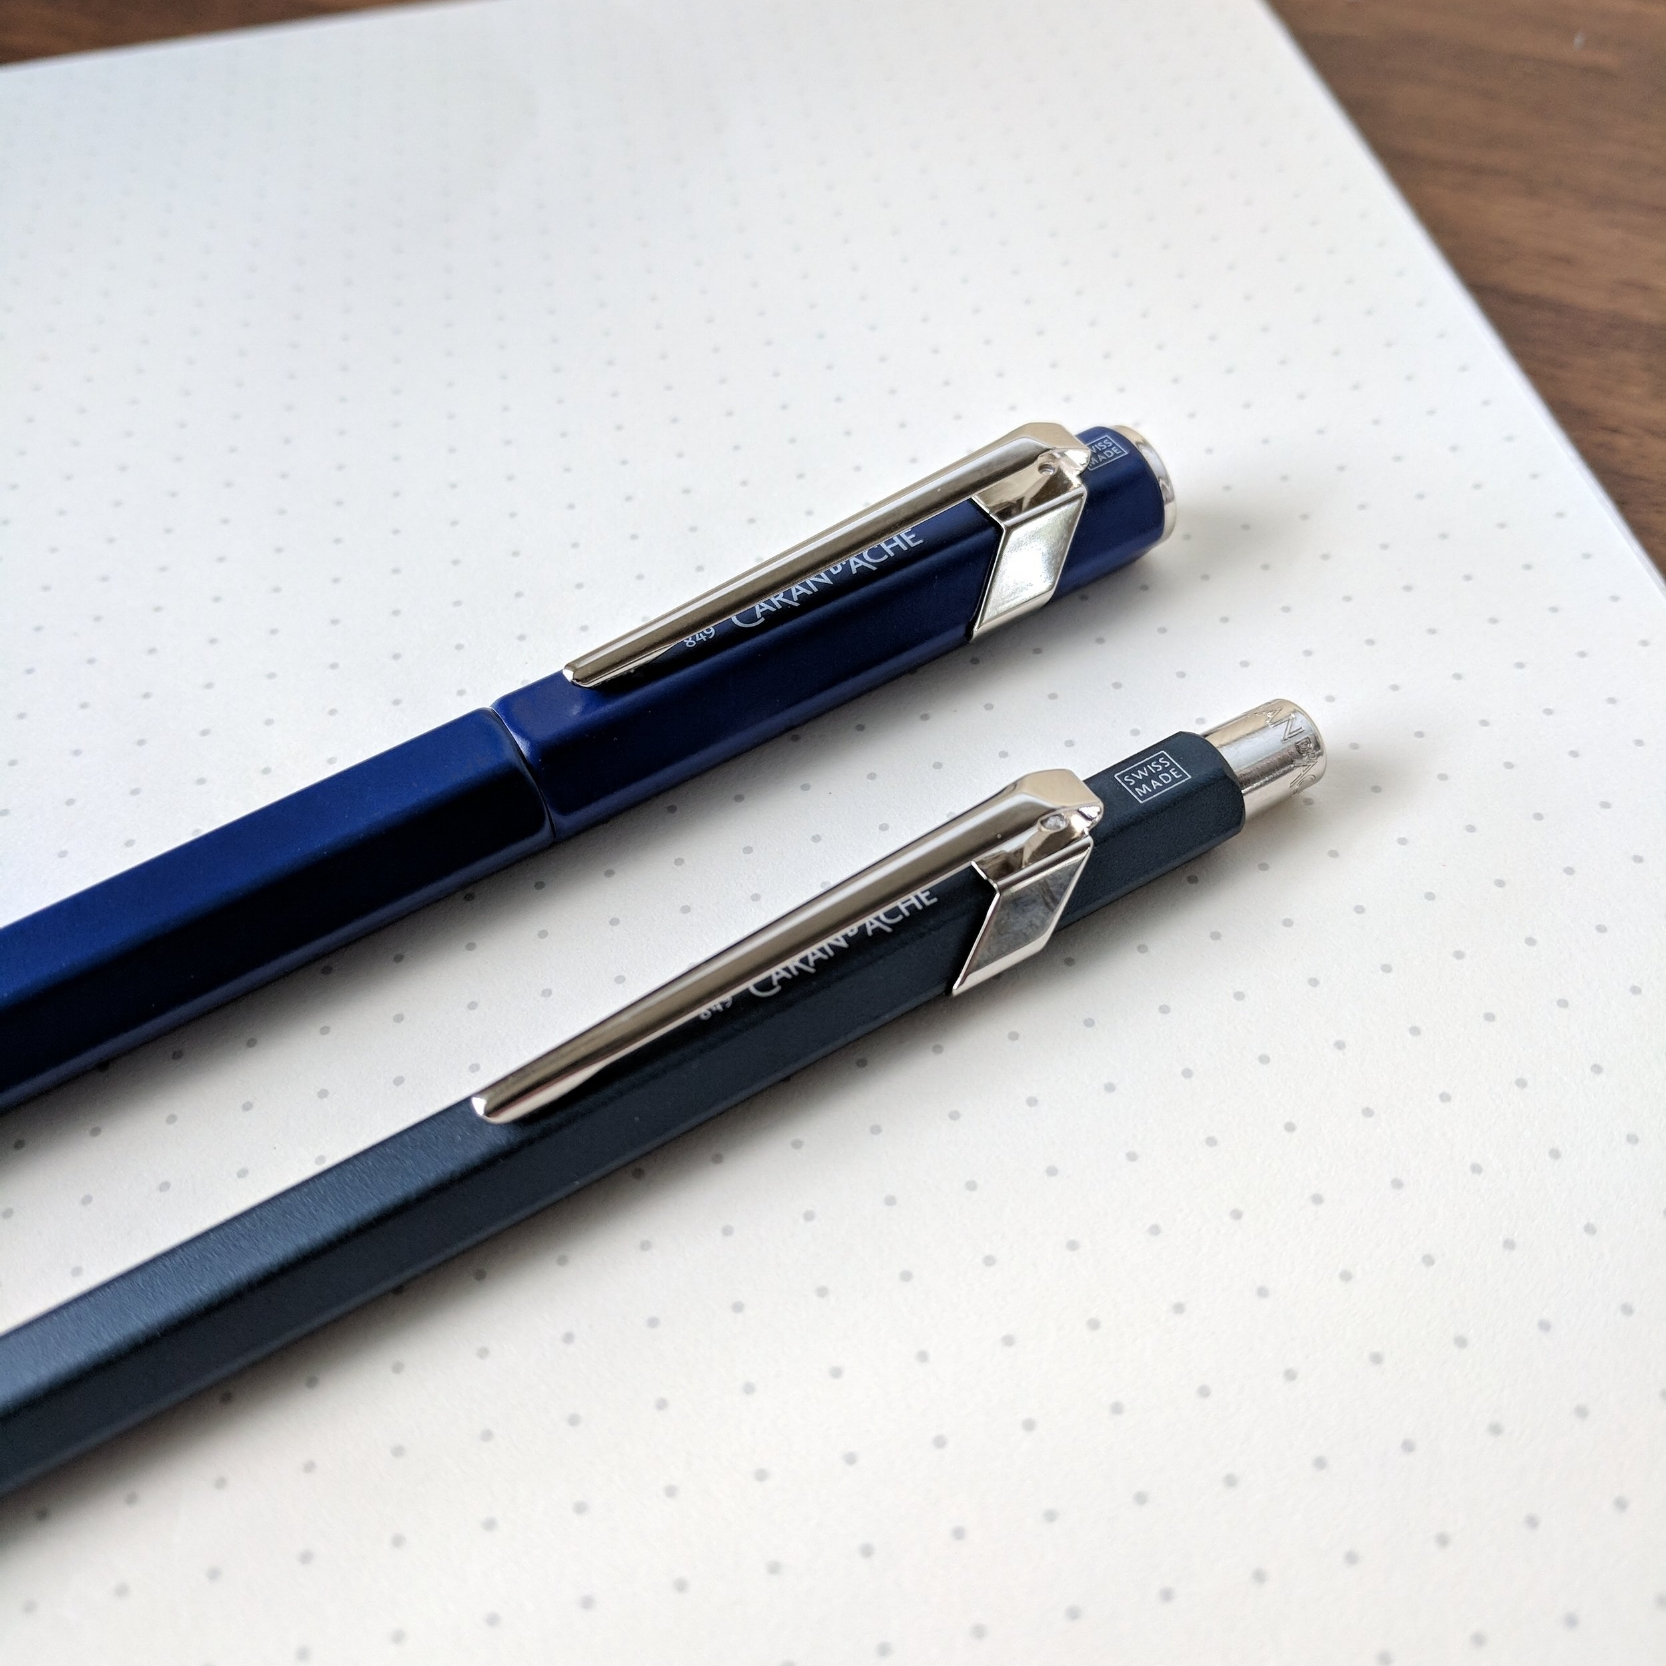 I like the hexagonal barrel on the 849, but for reasons unknown Caran d'Ache has placed the logo underneath the clip. It's quite nice looking, so no need to hide it!